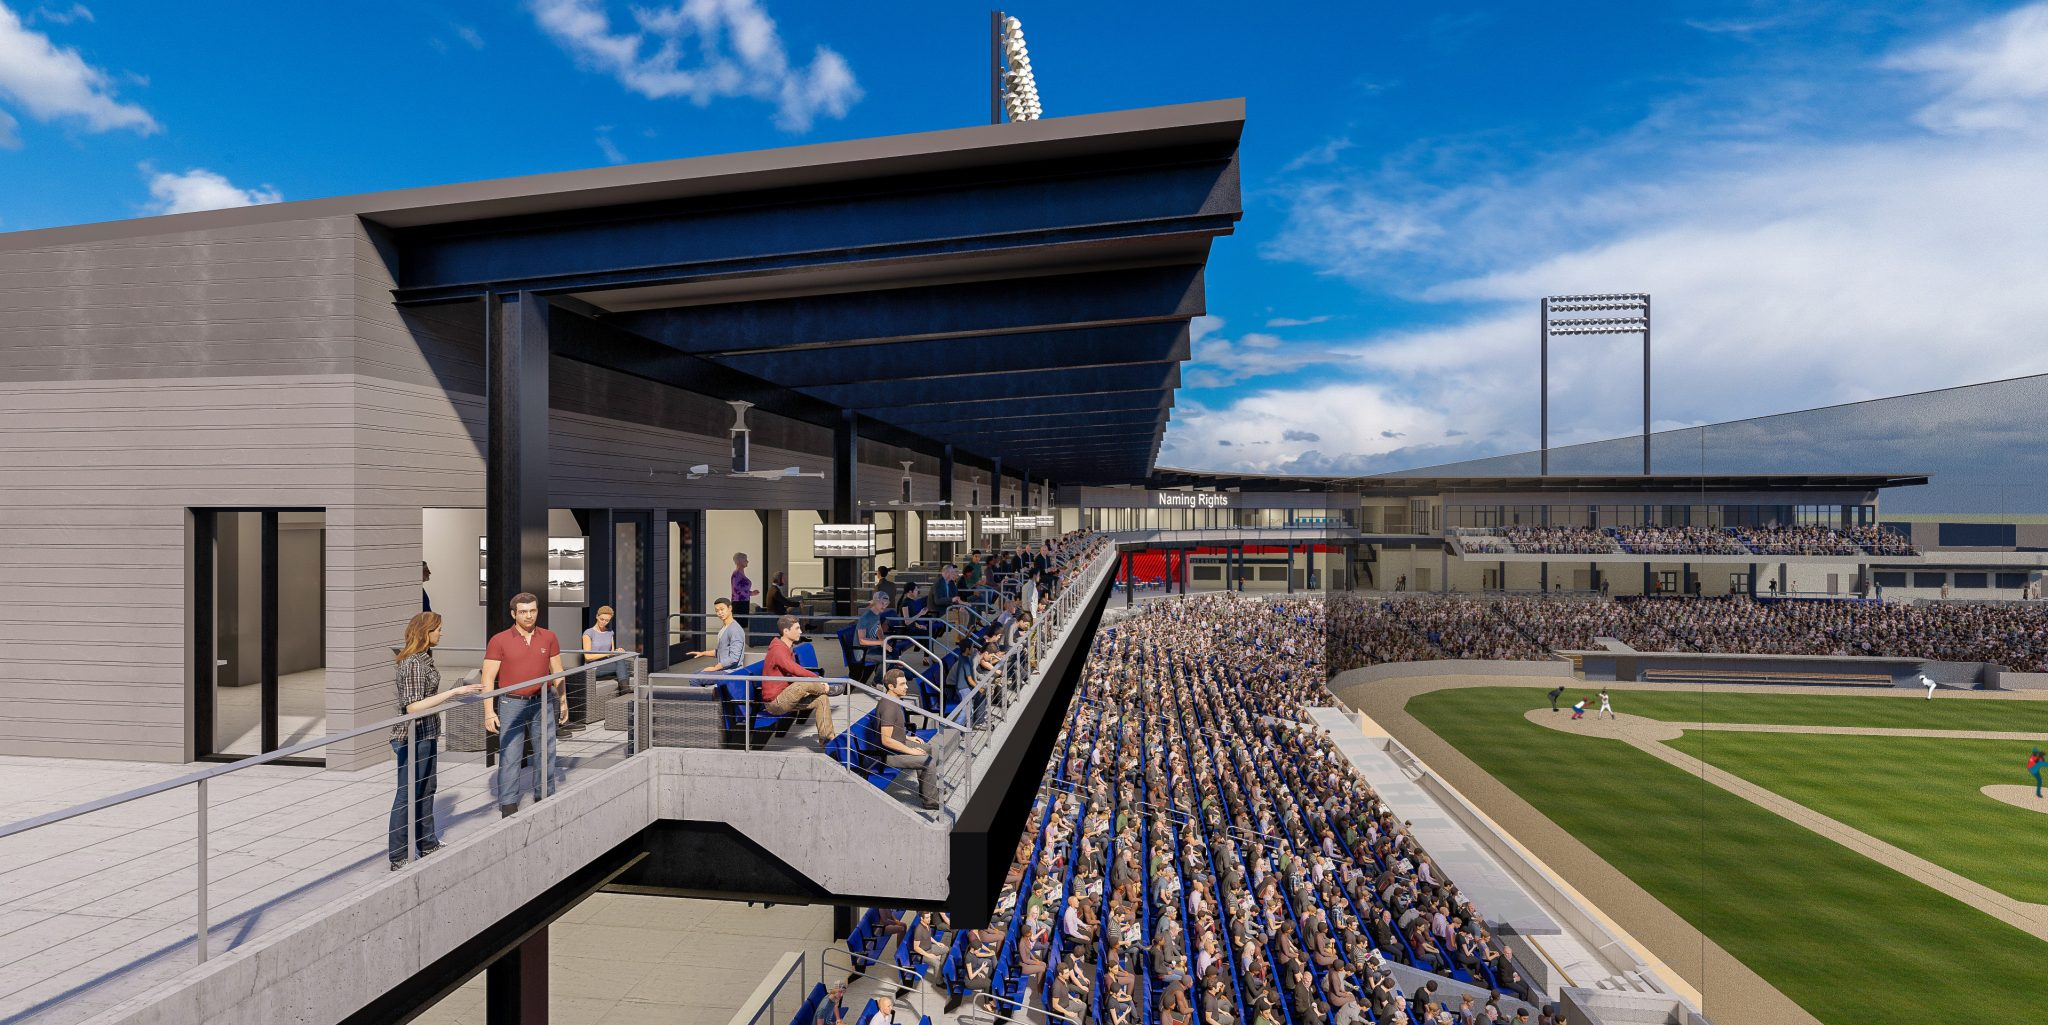 Wichita Weighs Extending Netting at Ballpark